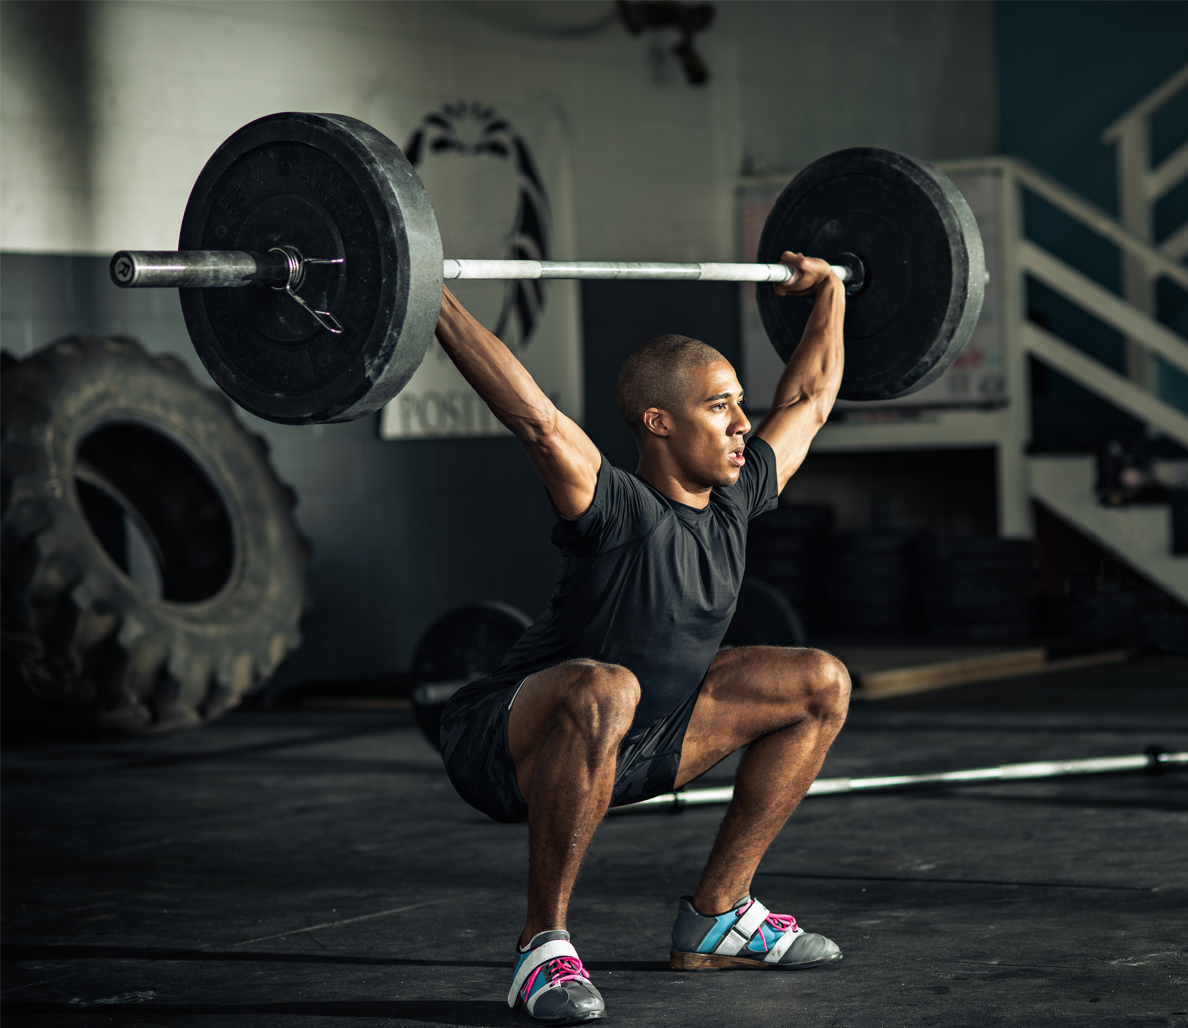 The Best Weight Lifting Shoes For Powerlifting And Olympic Lifting